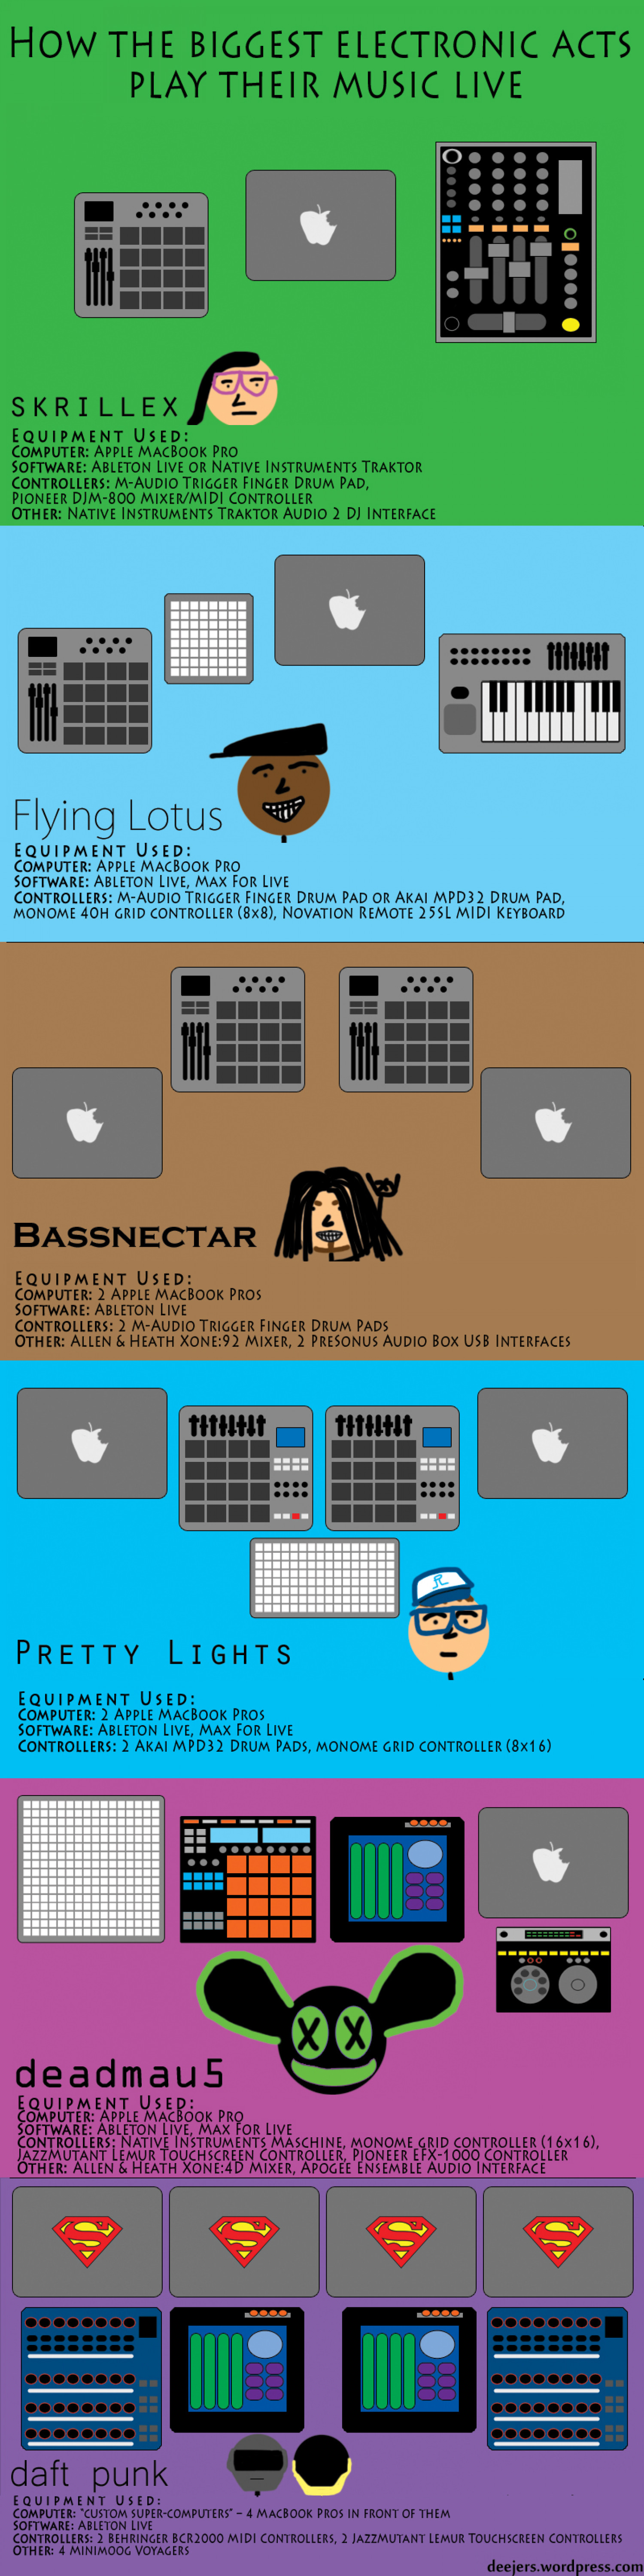 How The Biggest Electronic Acts Play Their Music Live Infographic